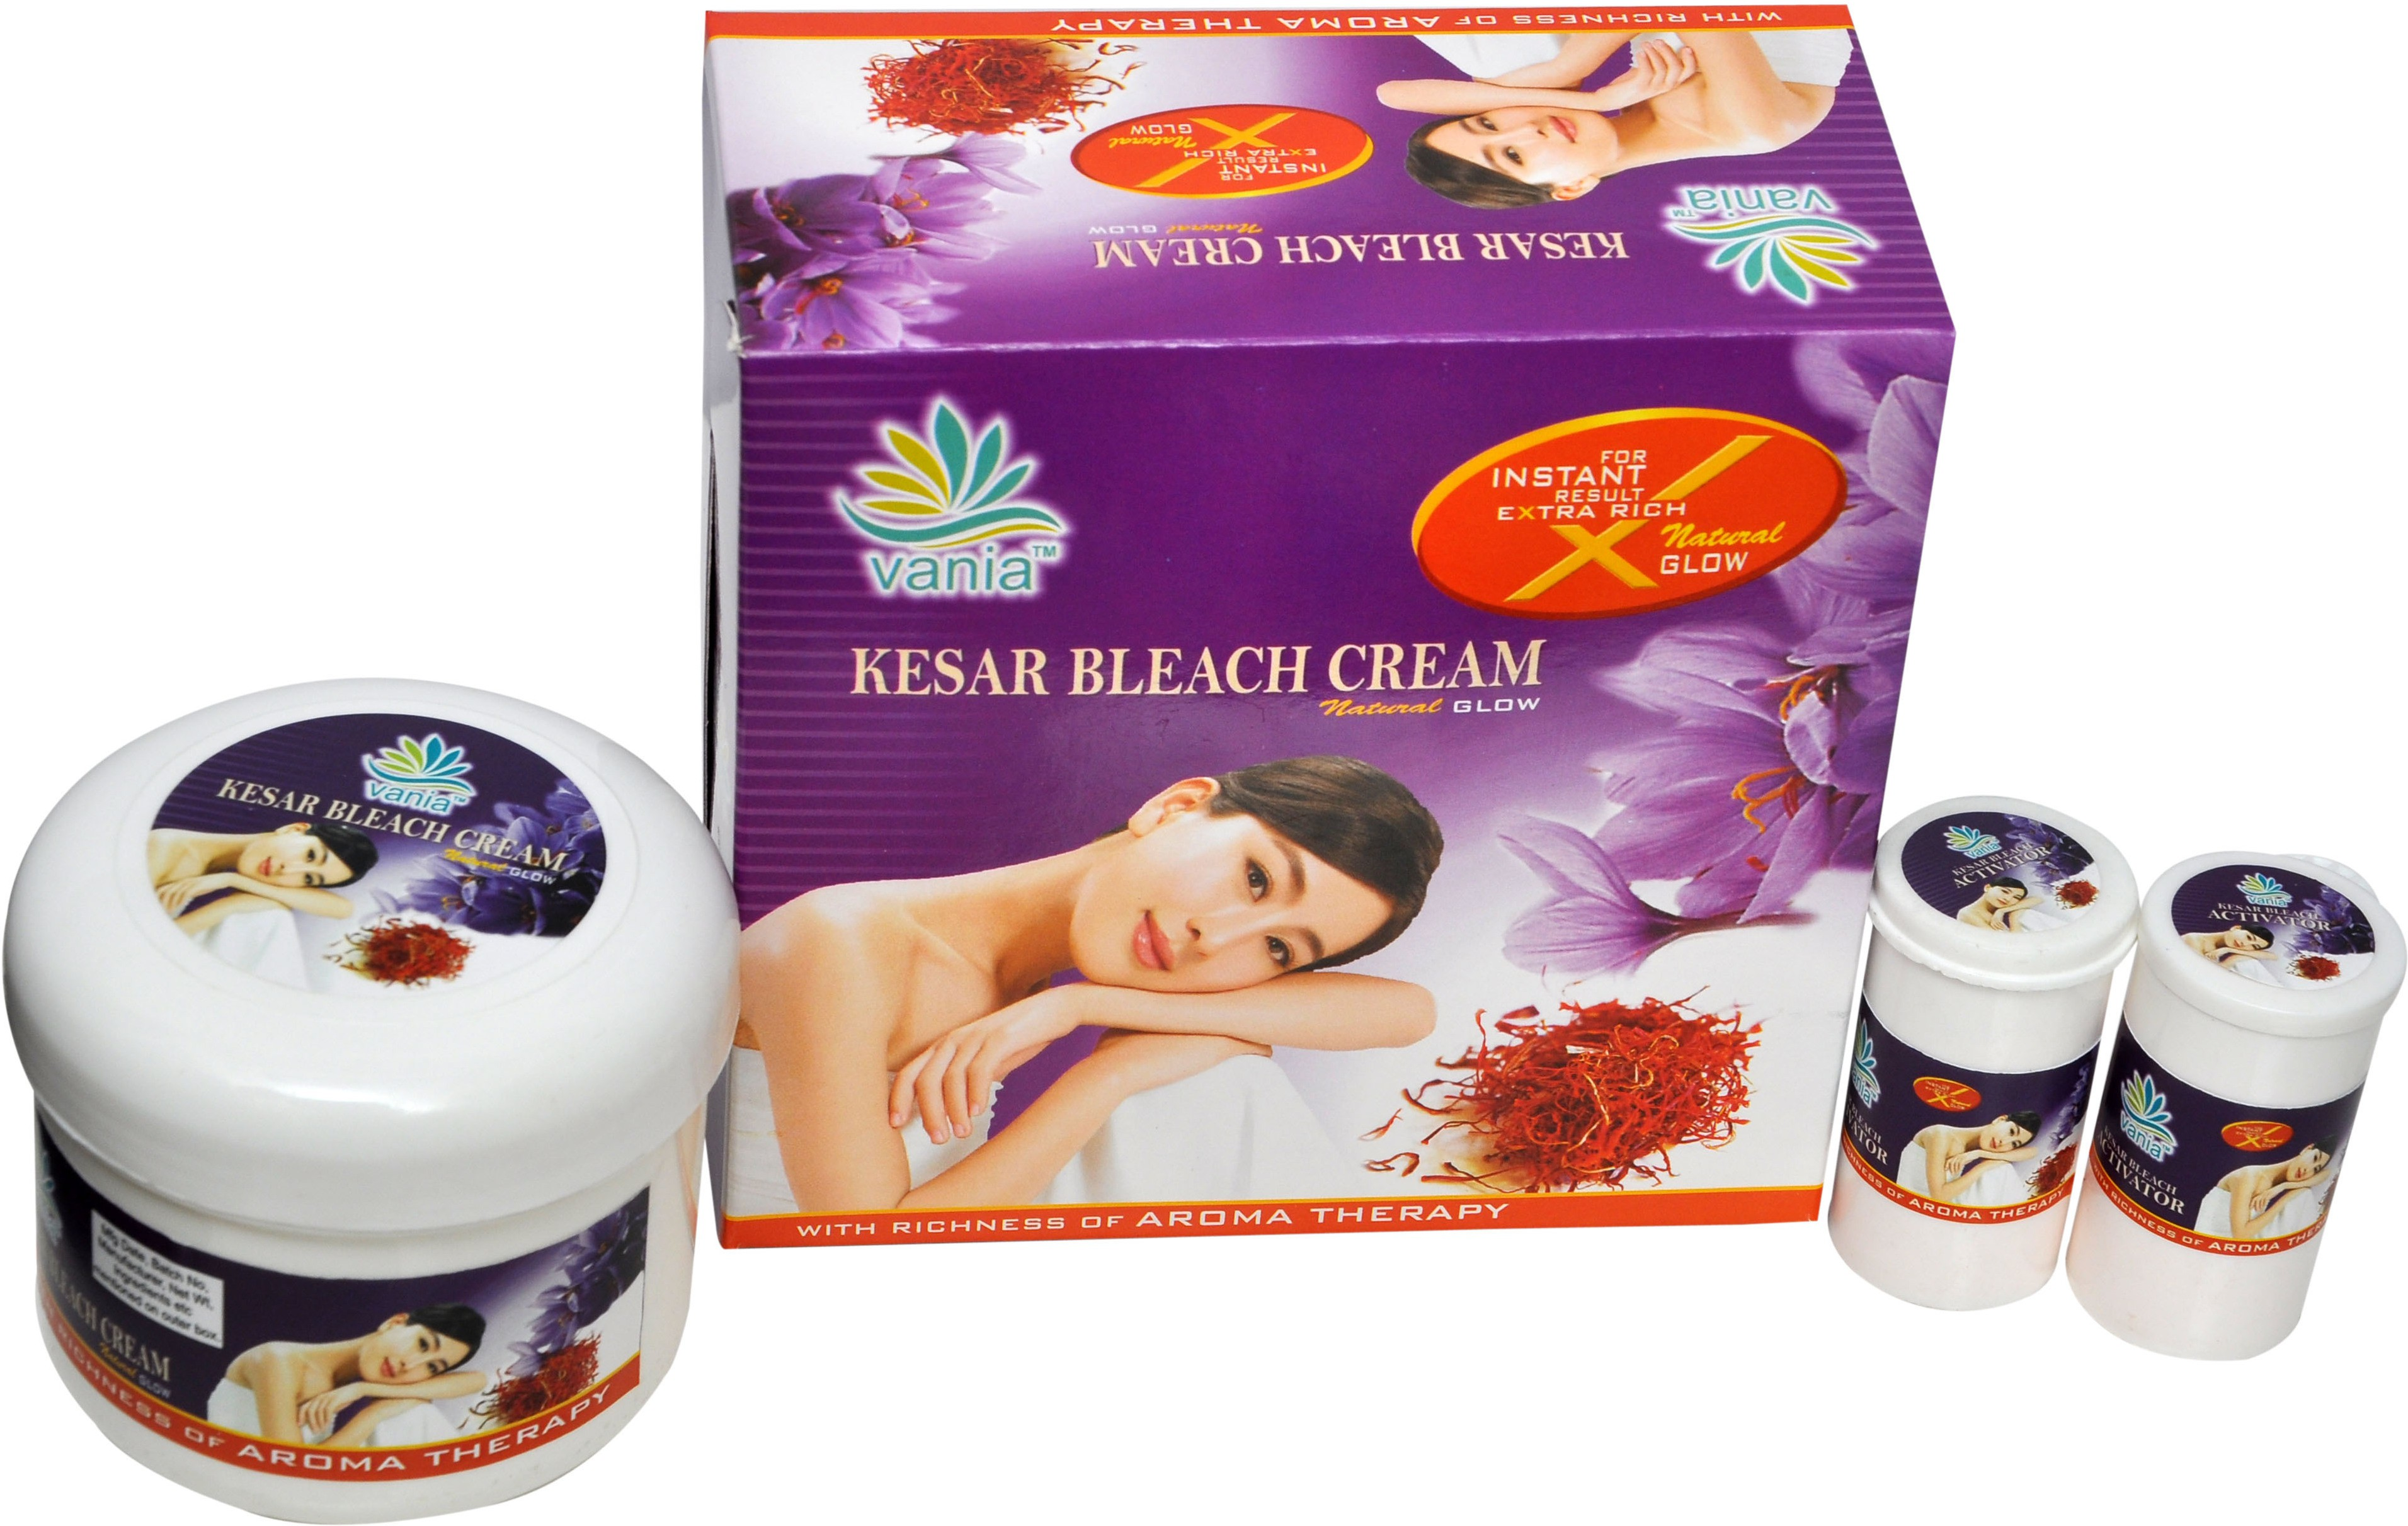 Vania Kesar Bleach Cream